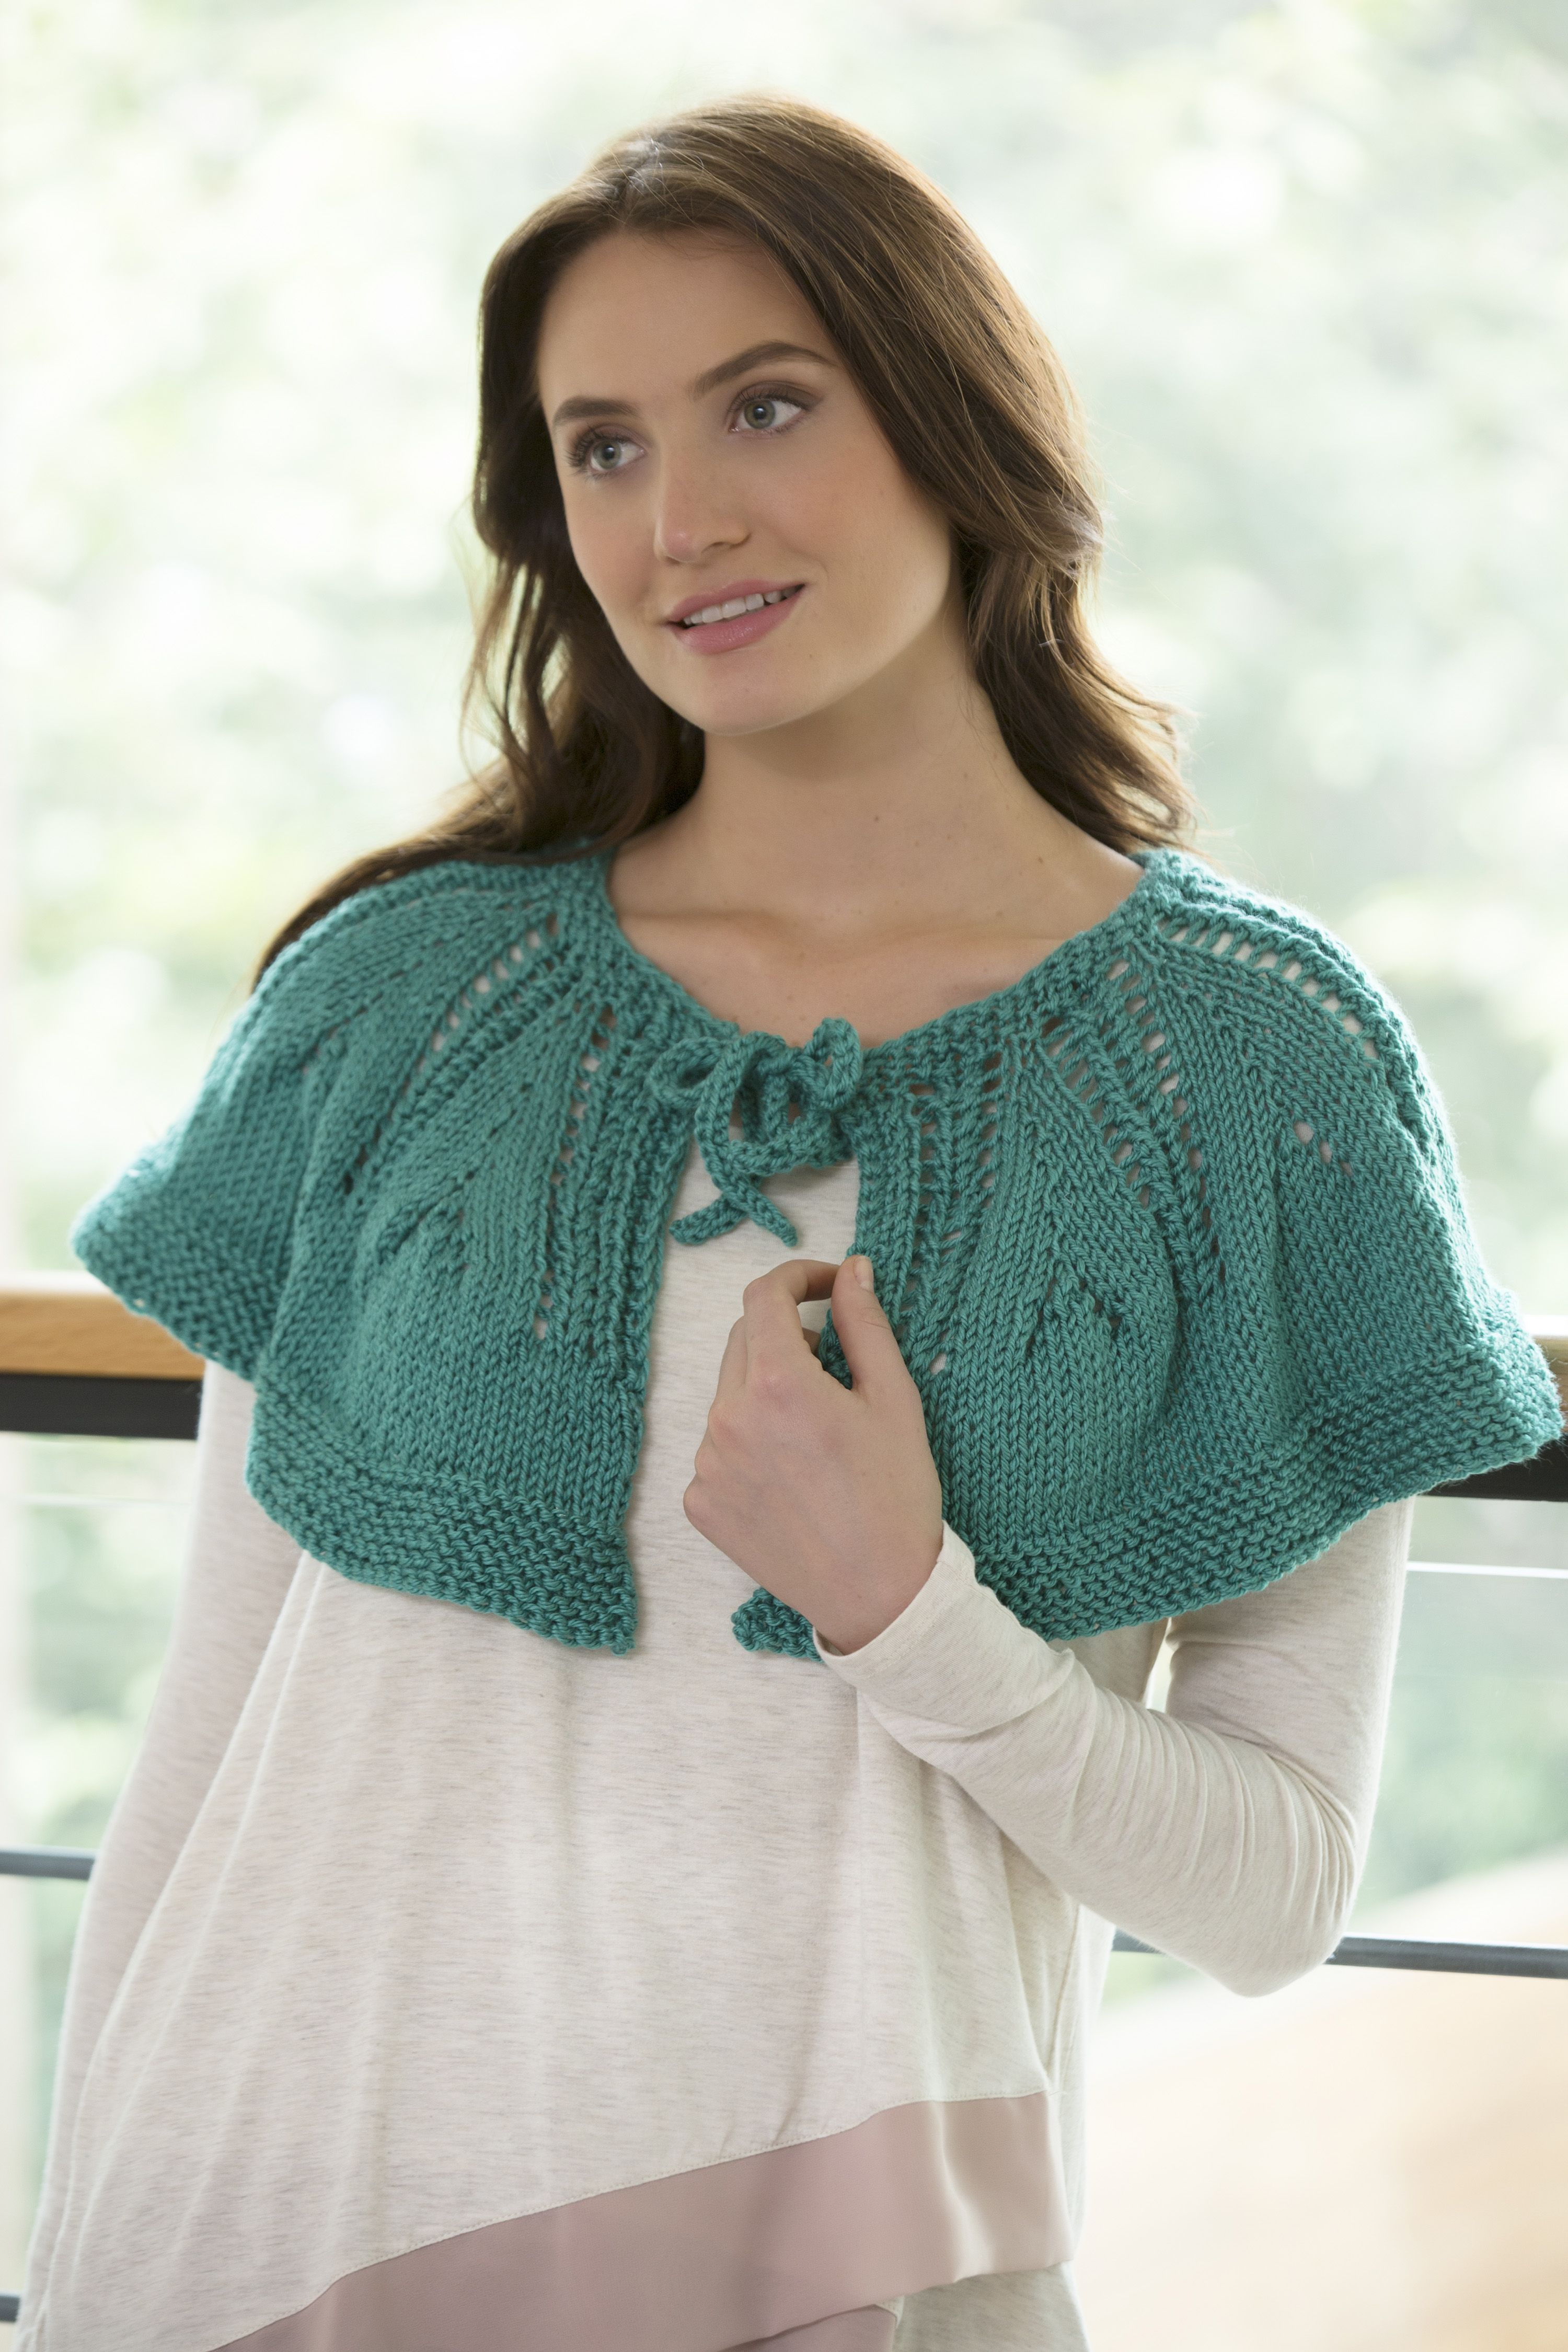 Ruffle or Not Capelet Free Knitting Pattern in Red Heart Yarns | New ...